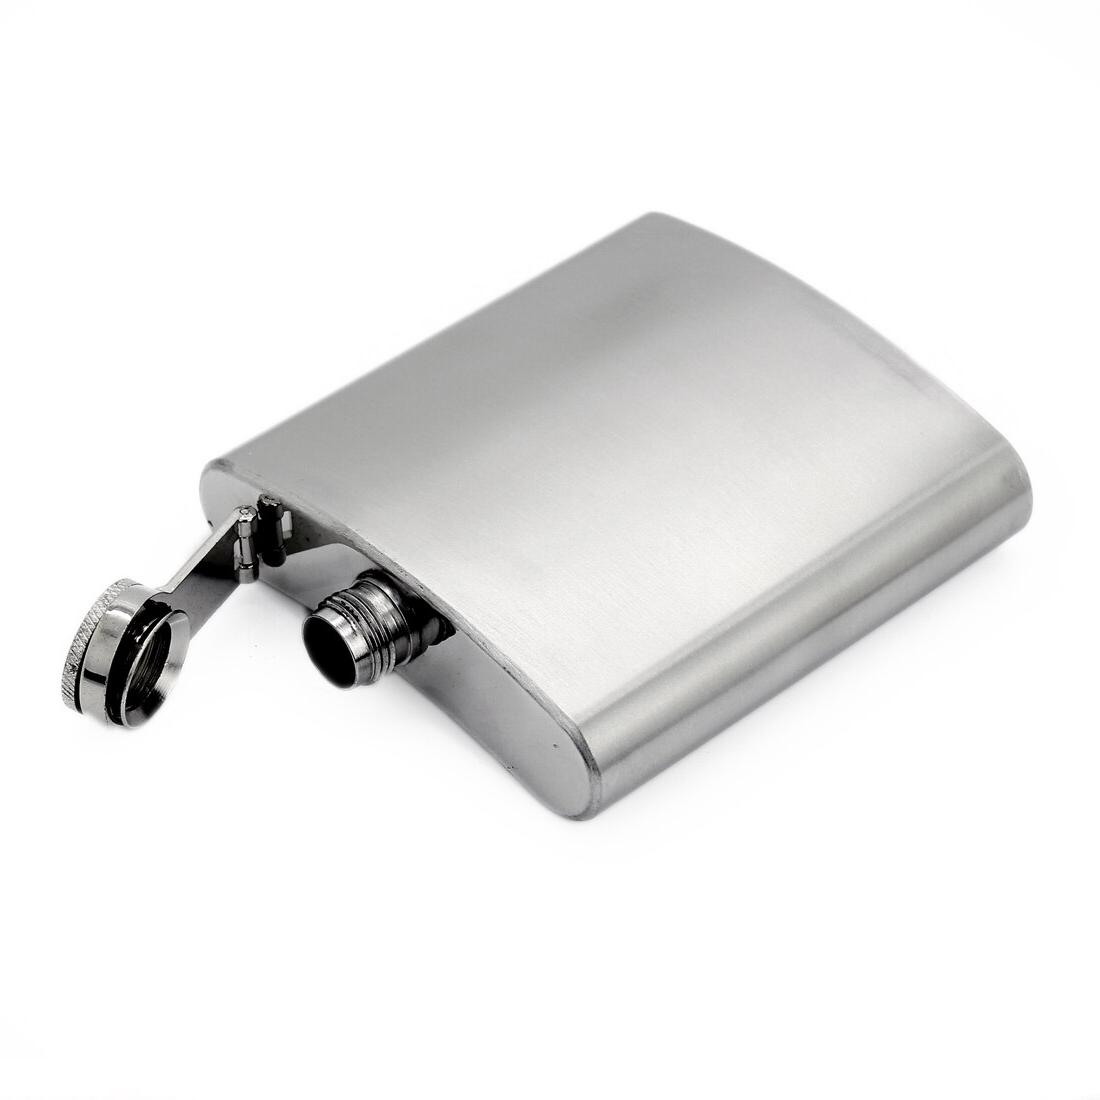 Portable <font><b>4</b></font>/5/6/7/8/10/18 <font><b>oz</b></font> Steel Wine Hip Cap Funnel Flask for Travel